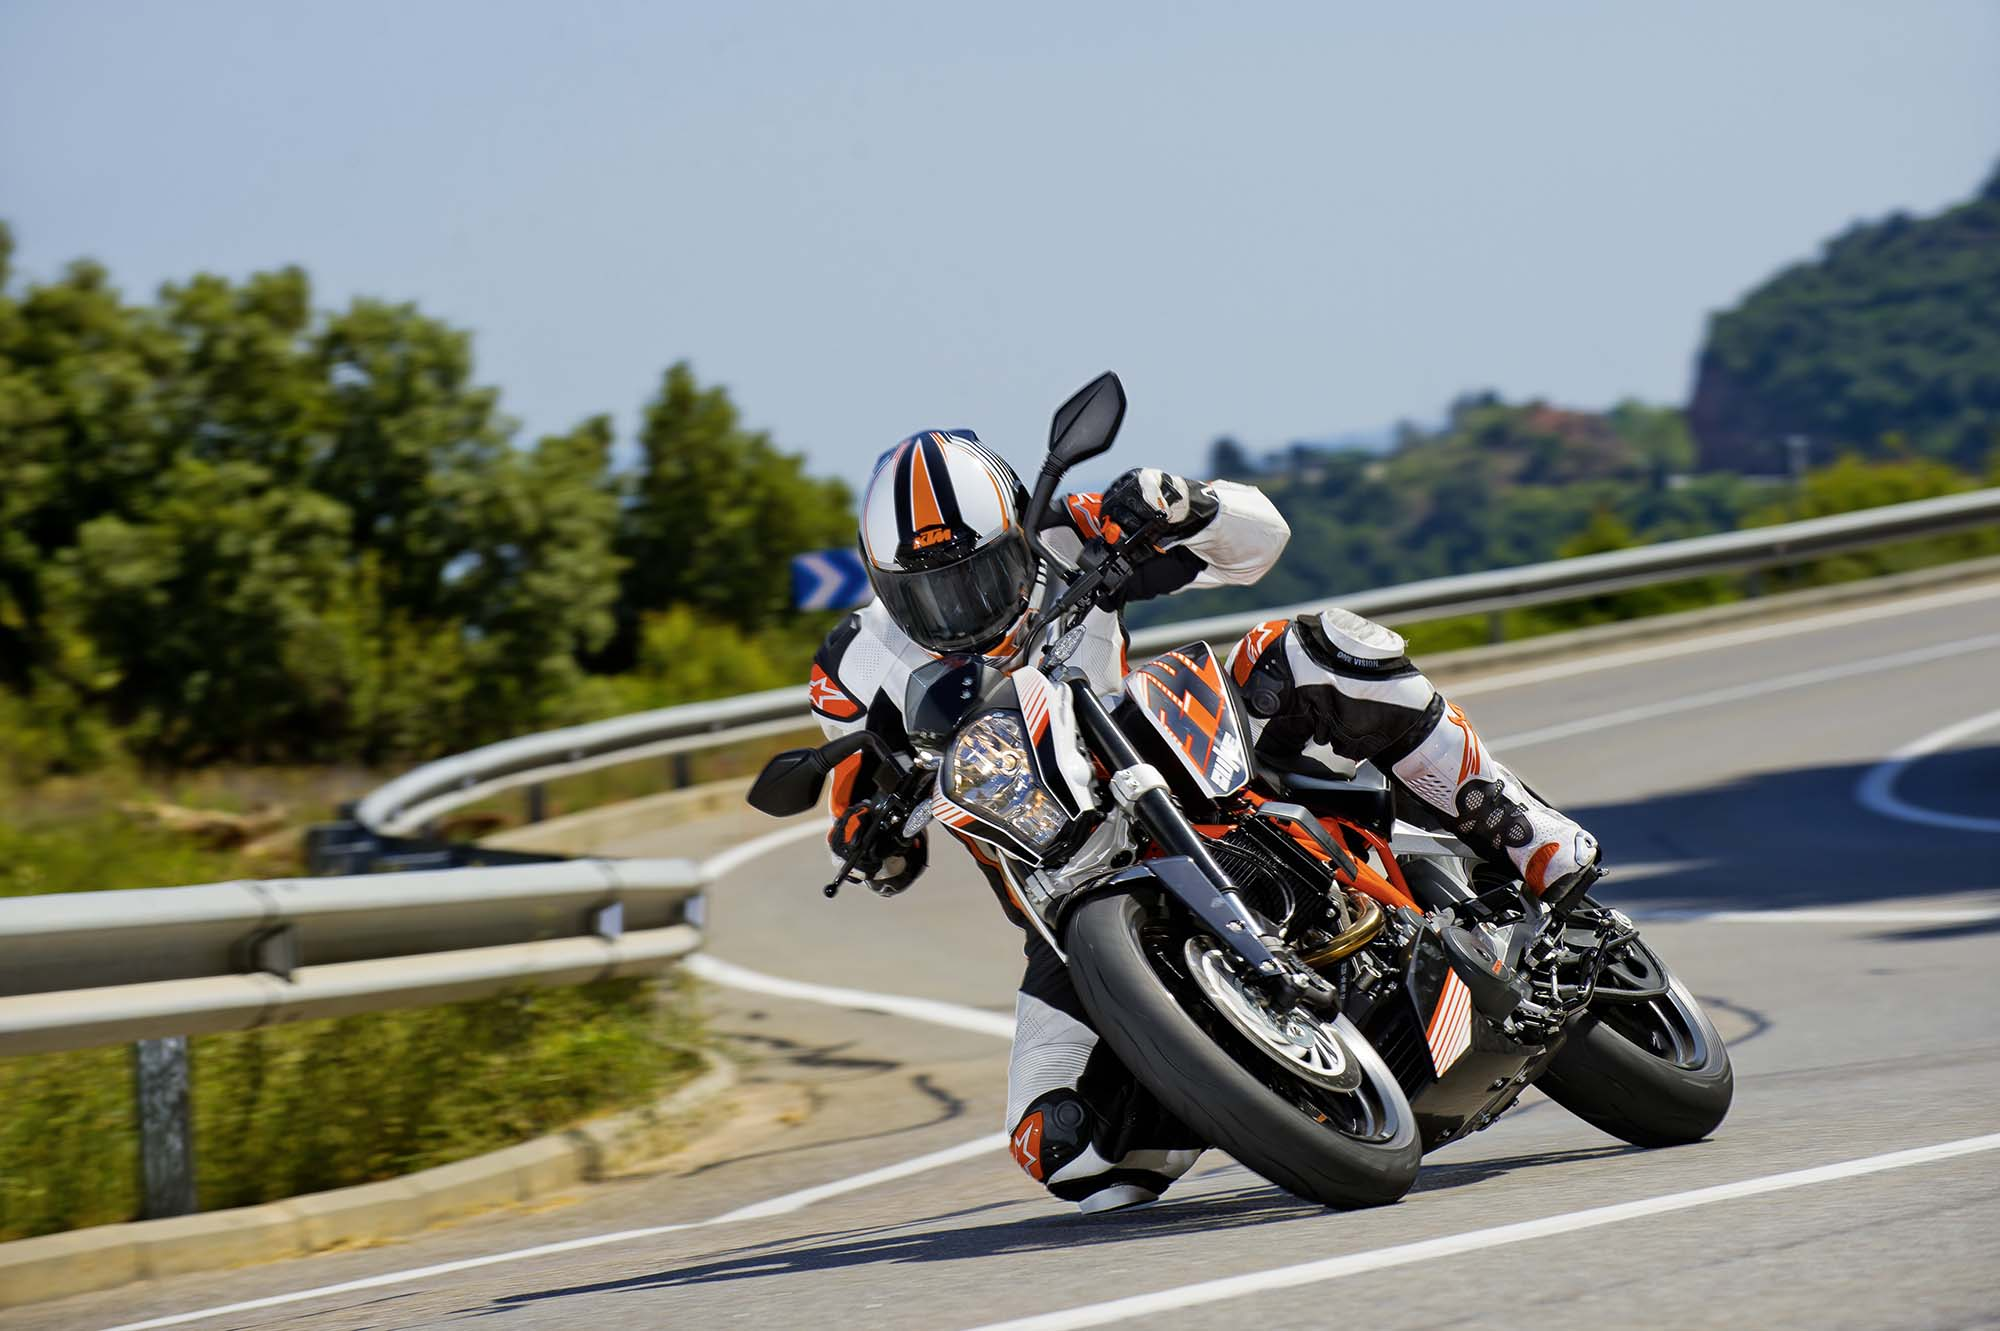 ktm duke 390 photos, images and wallpapers - mouthshut